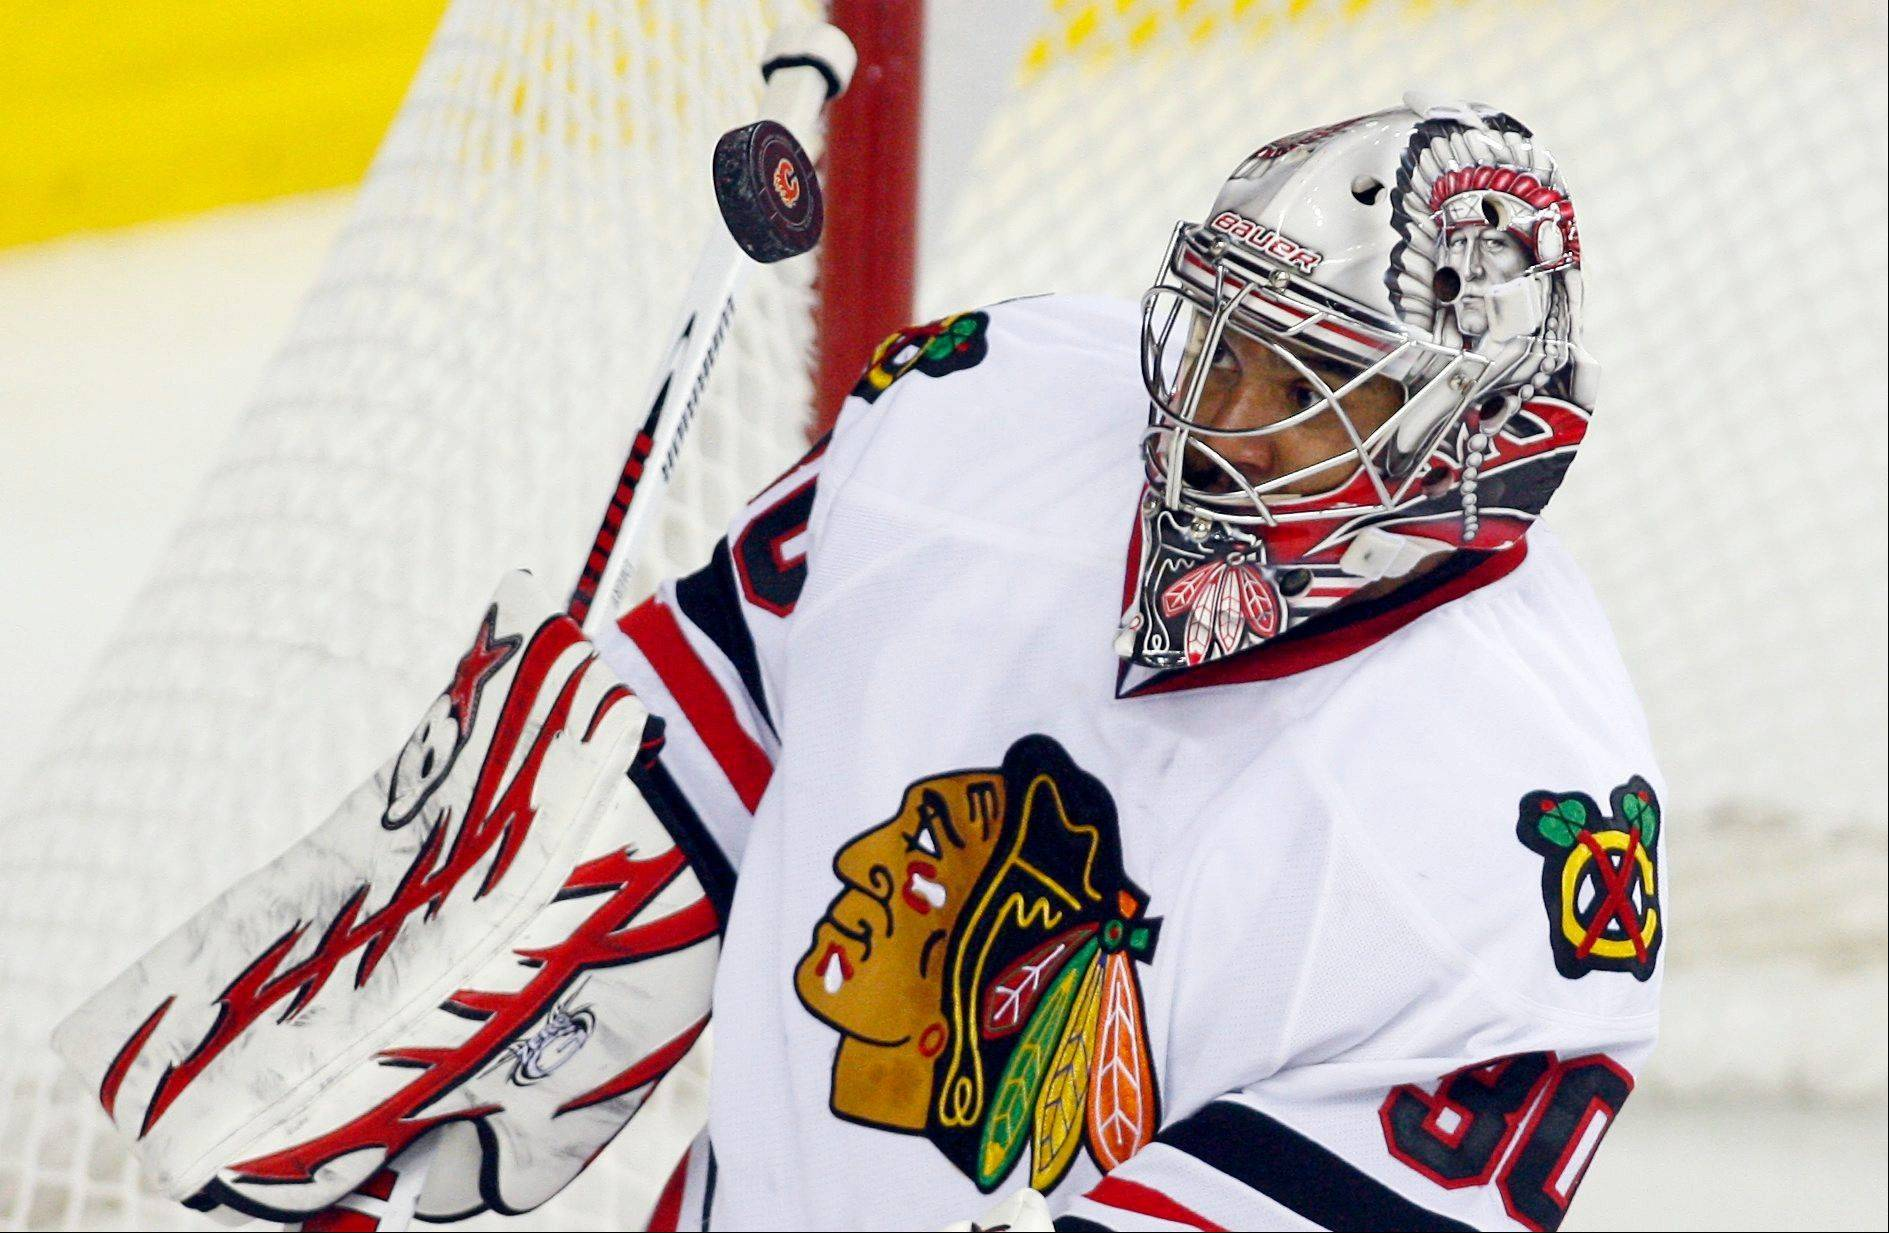 Ray Emery will be in the net tonight for the Blackhawks when they take on the Avalanche at the Pepsi Center.